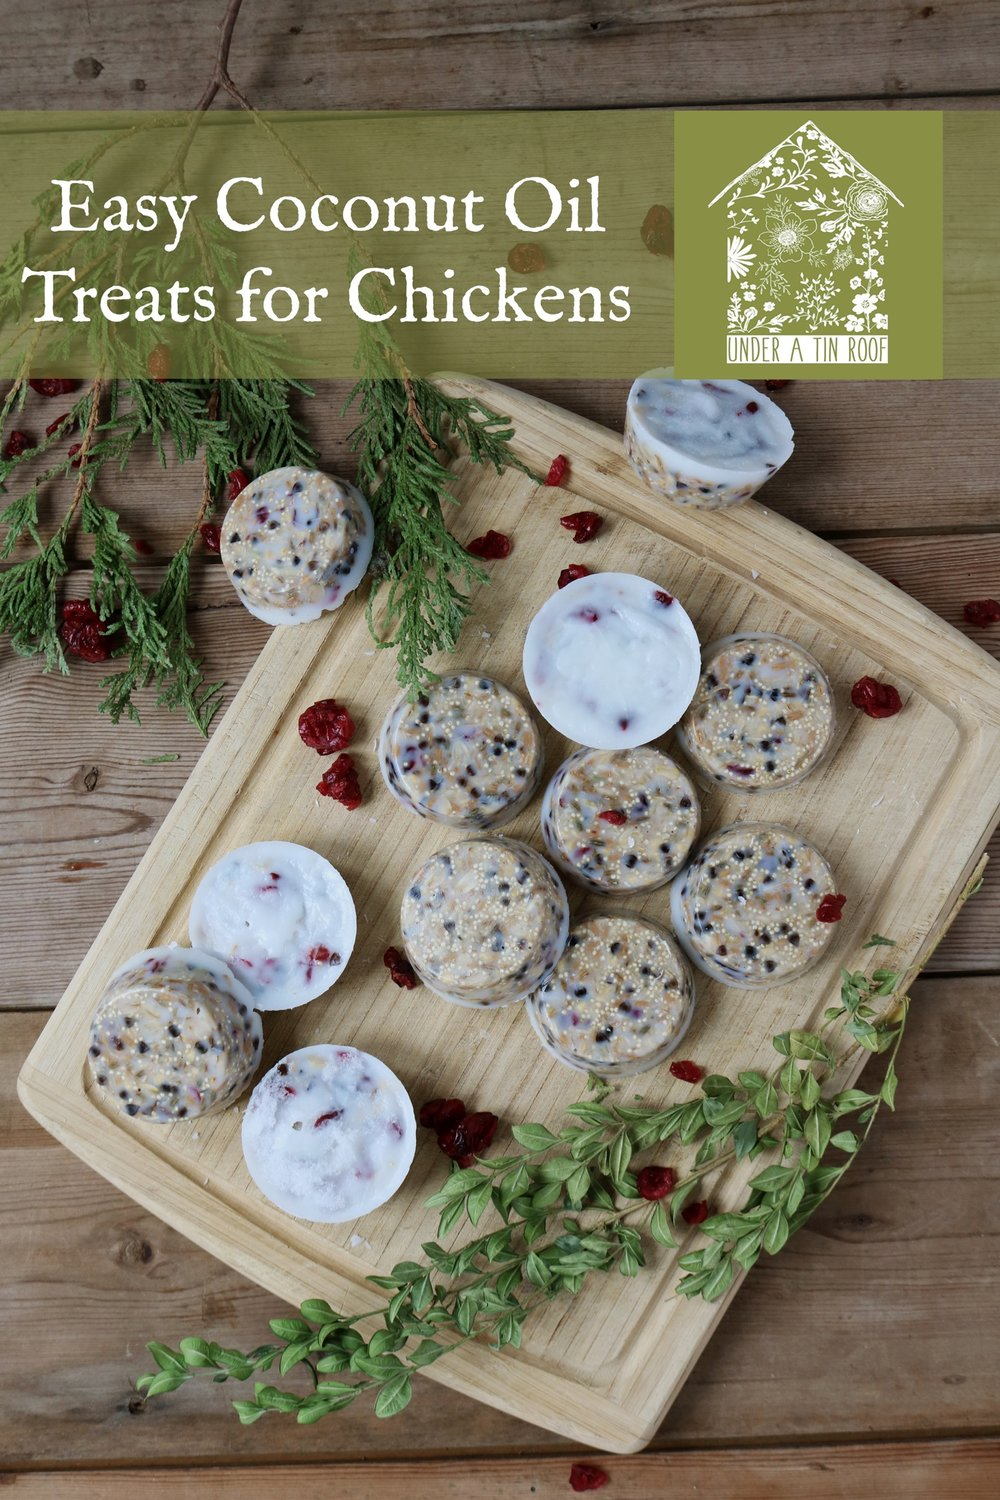 Easy Coconut Oil Treats for Chickens - Under A Tin Roof Blog